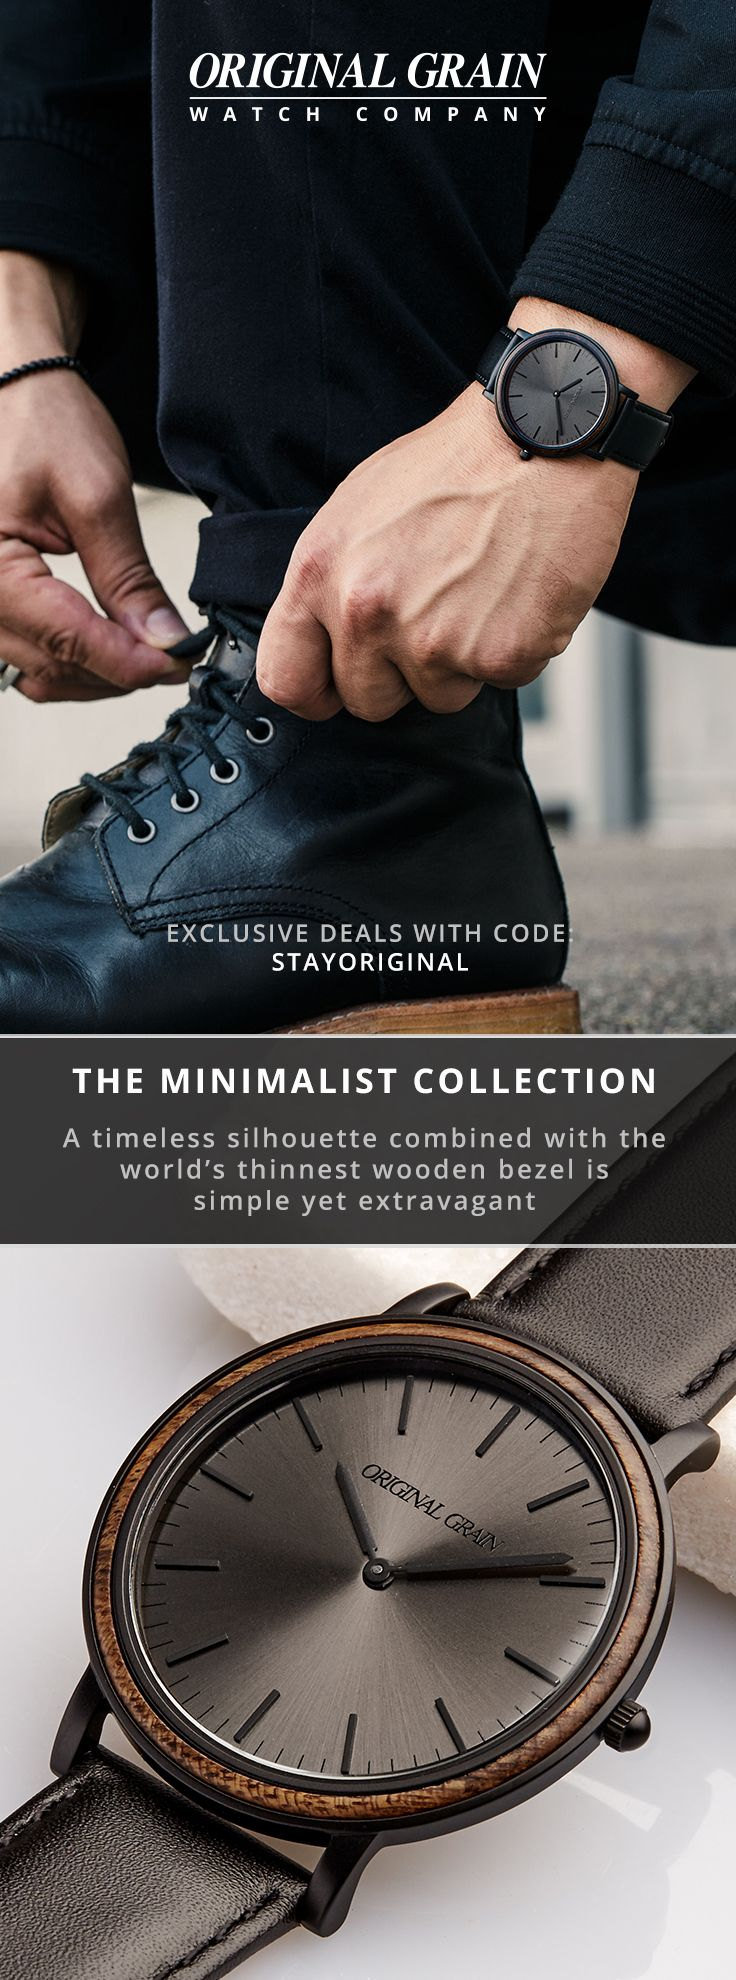 Timeless design and precision craftsmanship built for the modern gentleman. The Minimalist Collection provides everything you need, and nothing that you don't, featuring an ultra-sleek 40mm case.